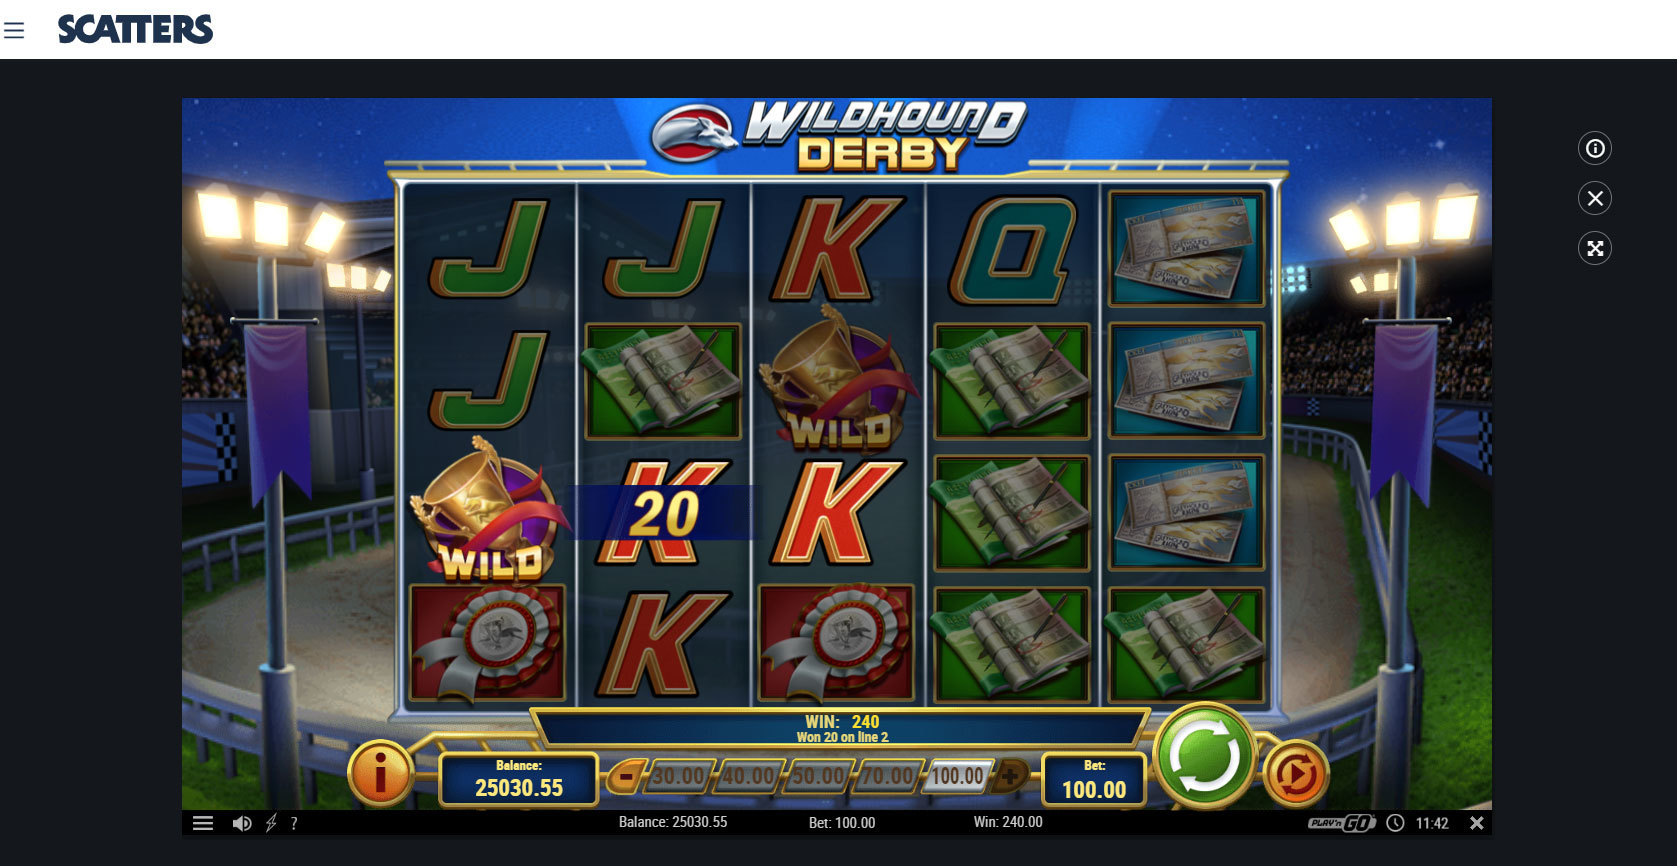 Play Wildhound Derby Online Slot at Scatters Slots Casino